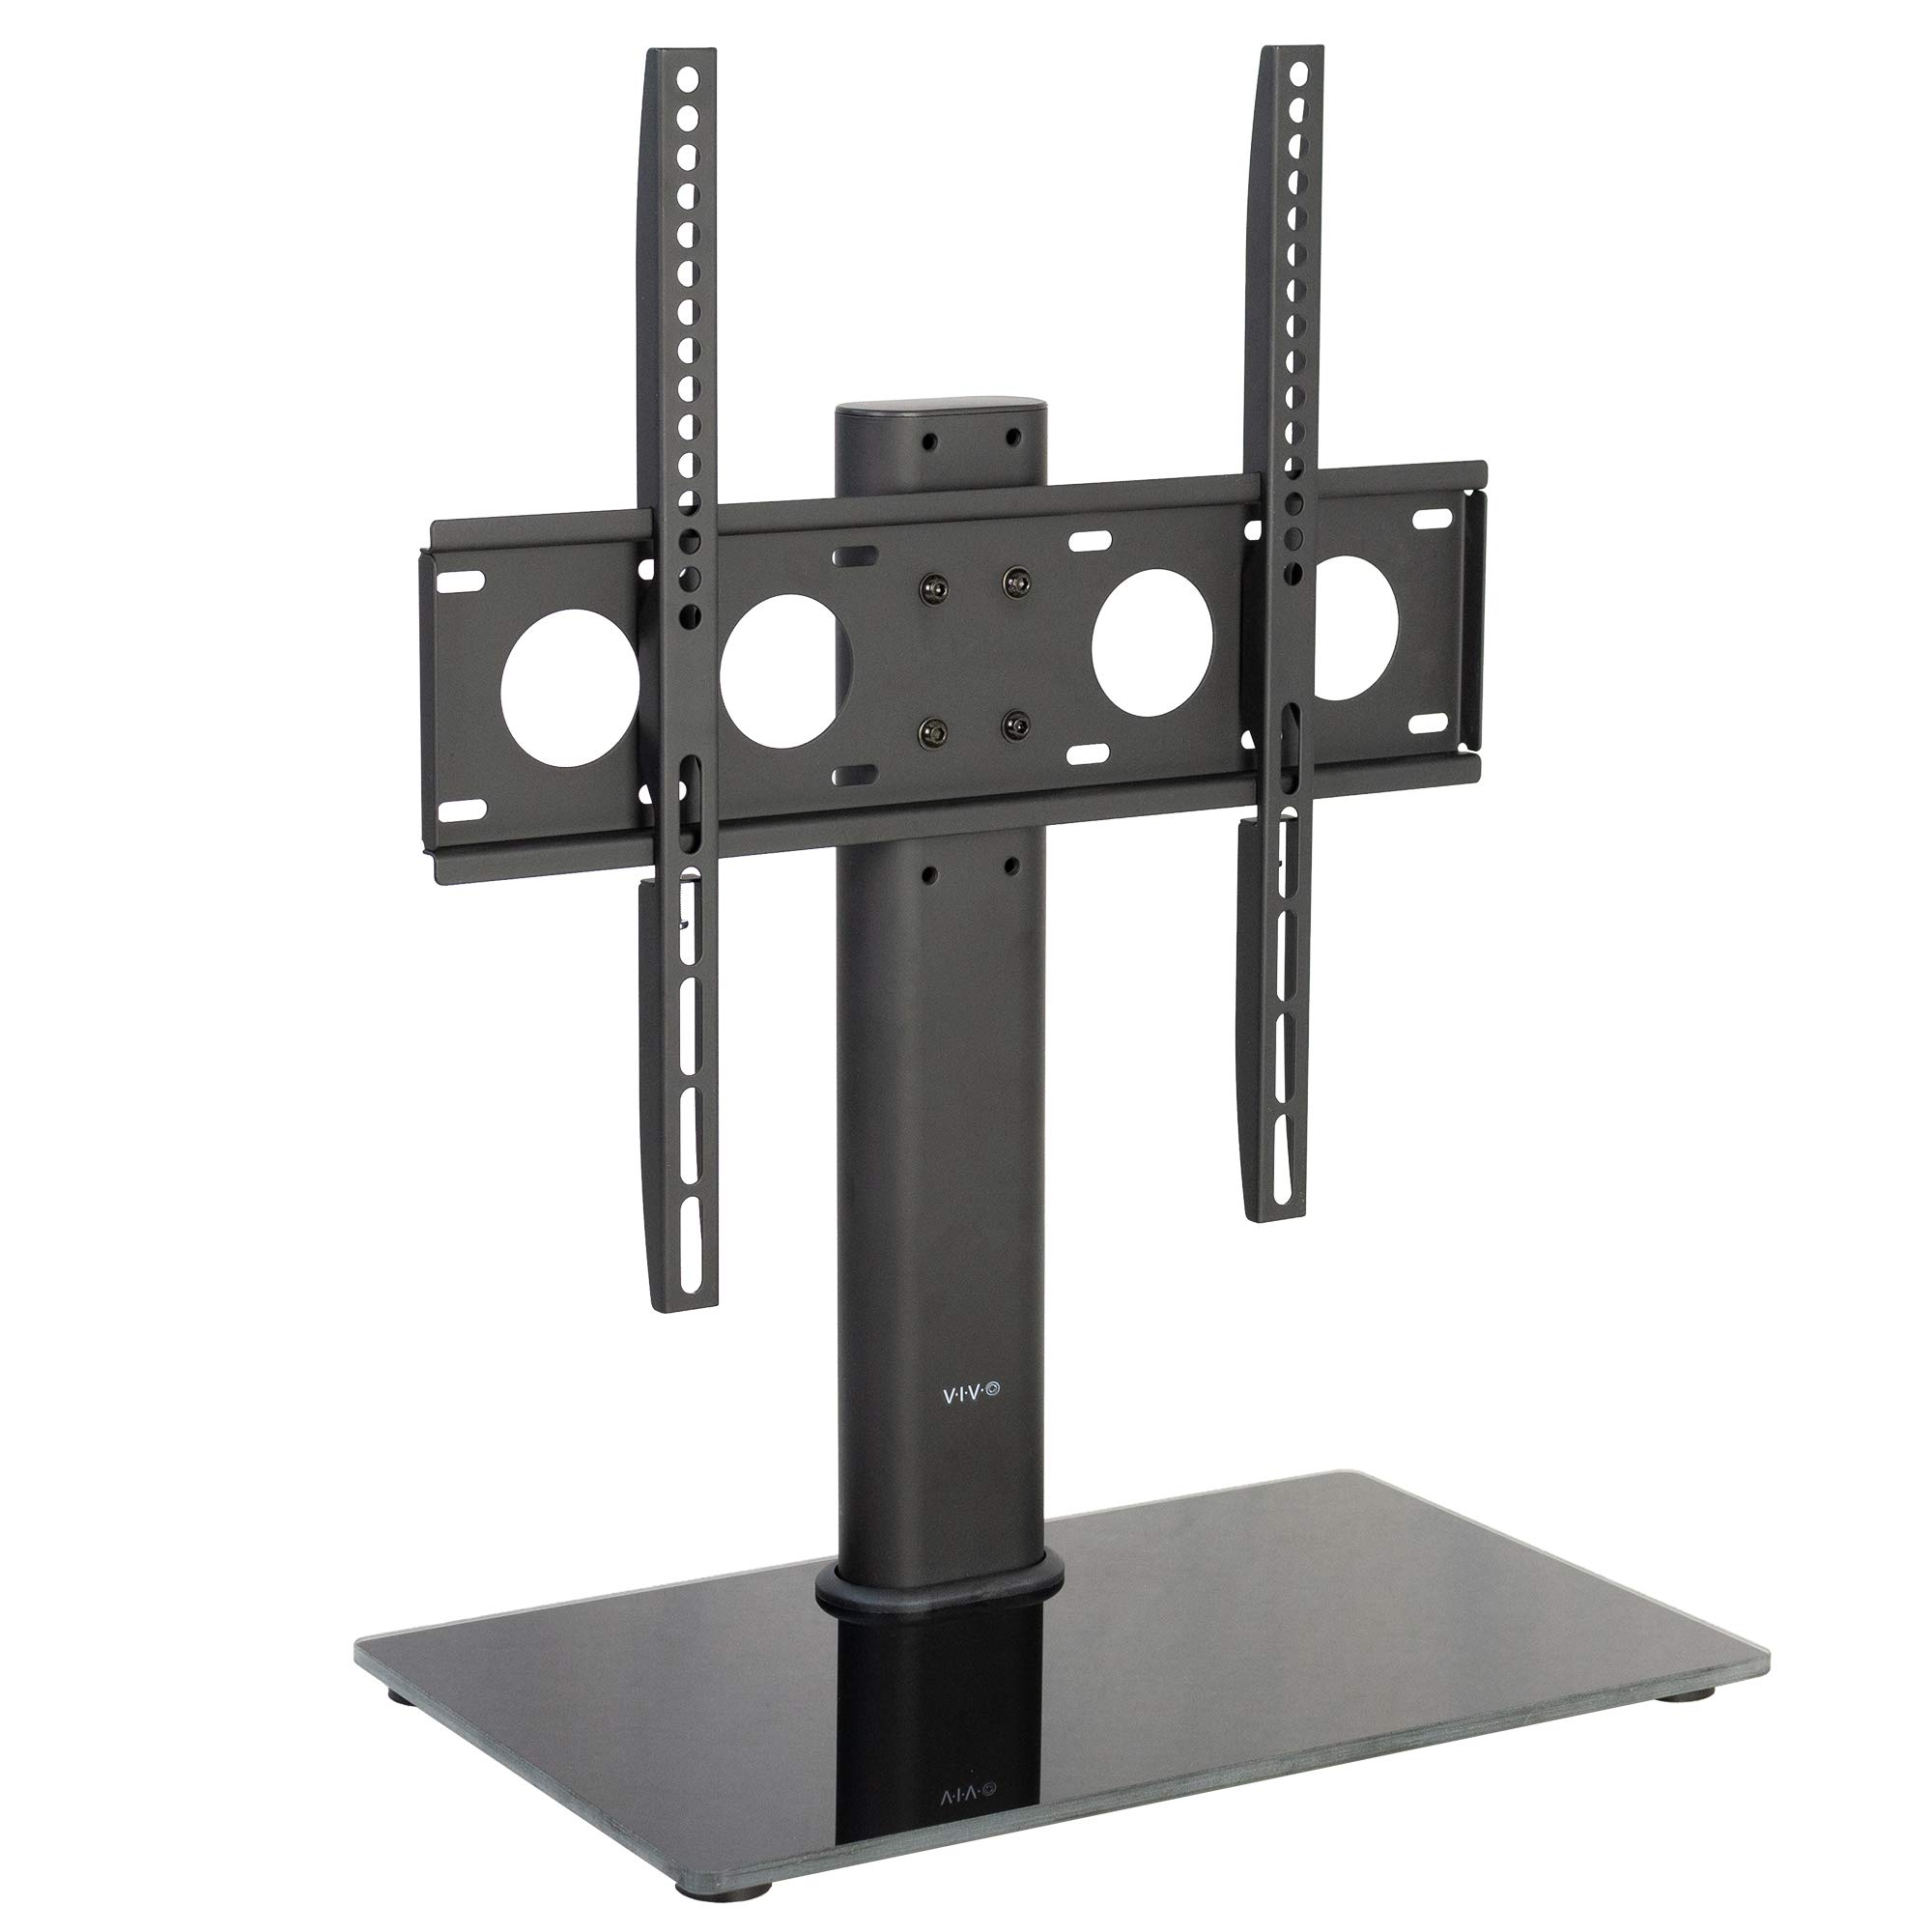 VIVO Universal TV Table Top Stand for 32'' to 50'' LCD LED Flat Screens   Black VESA Mount with Sleek Tempered Glass Base & Cable Management (STAND-TV00J)